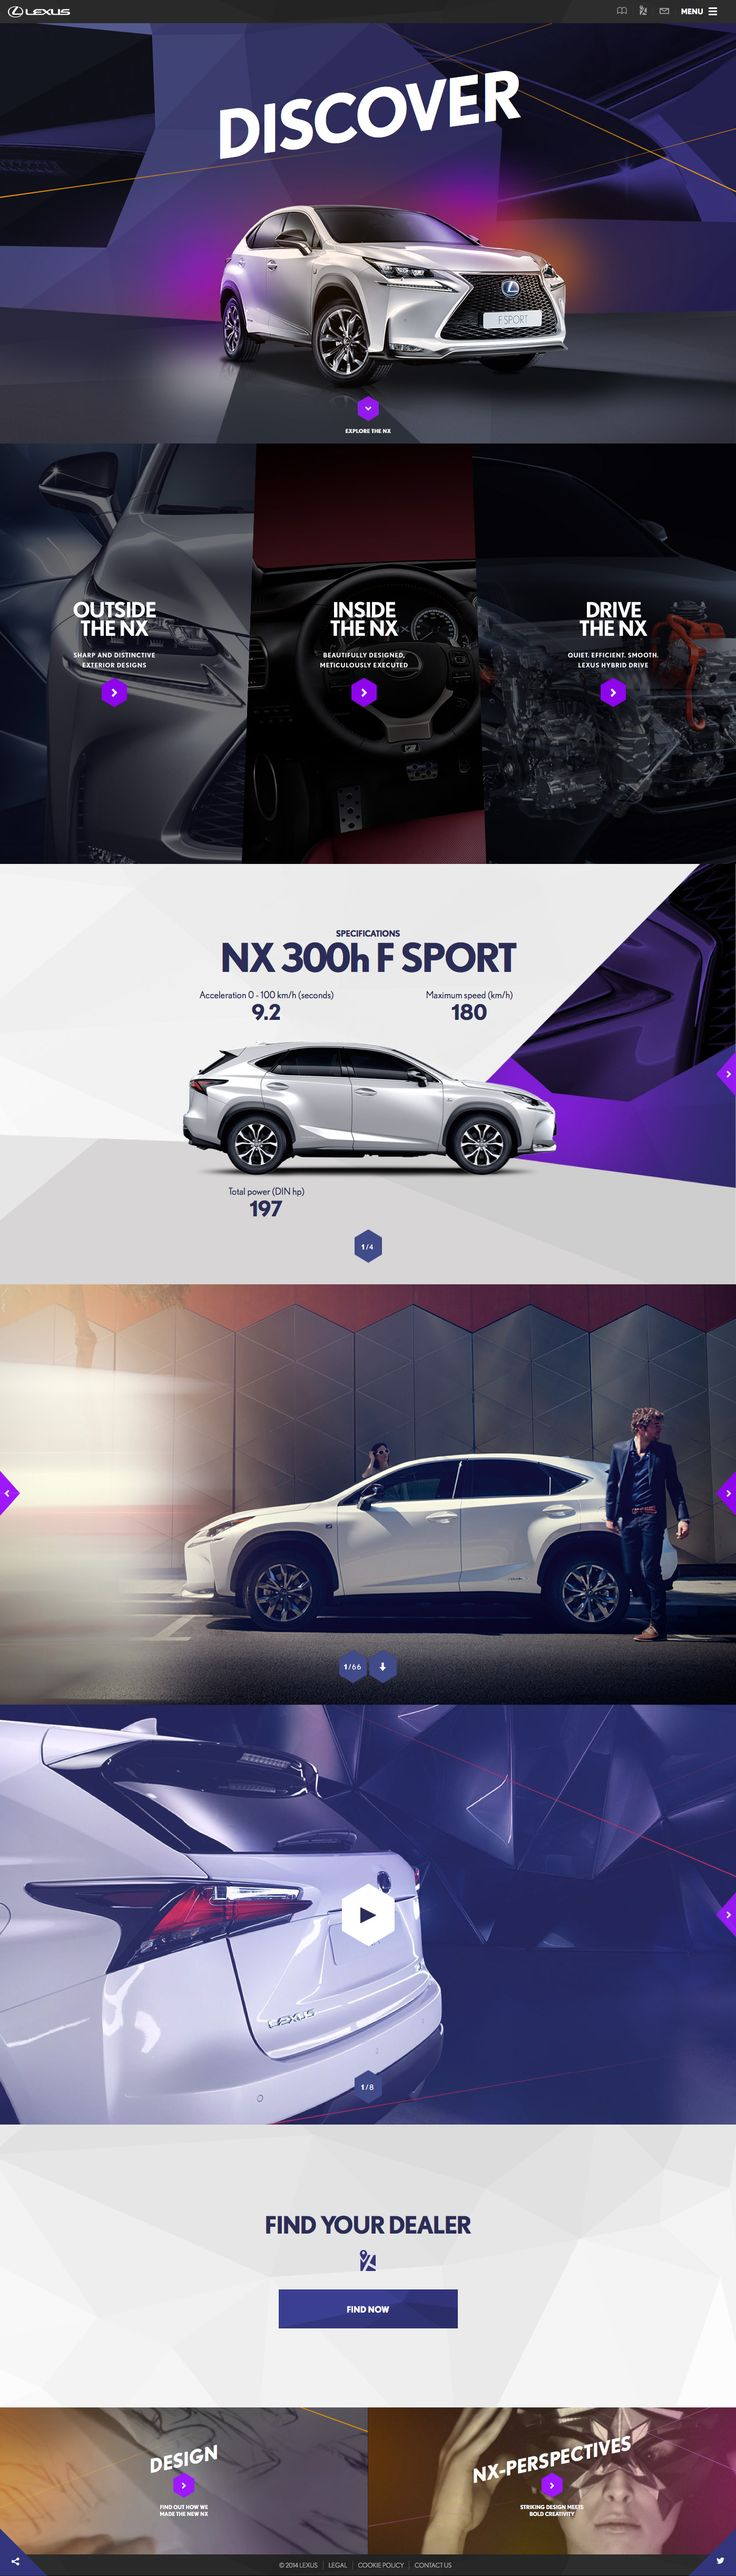 Unique Web Design, Lexus NX (http://www.lexus.eu/car-models/nx/nx-house/index.tmex#/discover/hero) #WebDesign #Design (http://www.pinterest.com/aldenchong/)